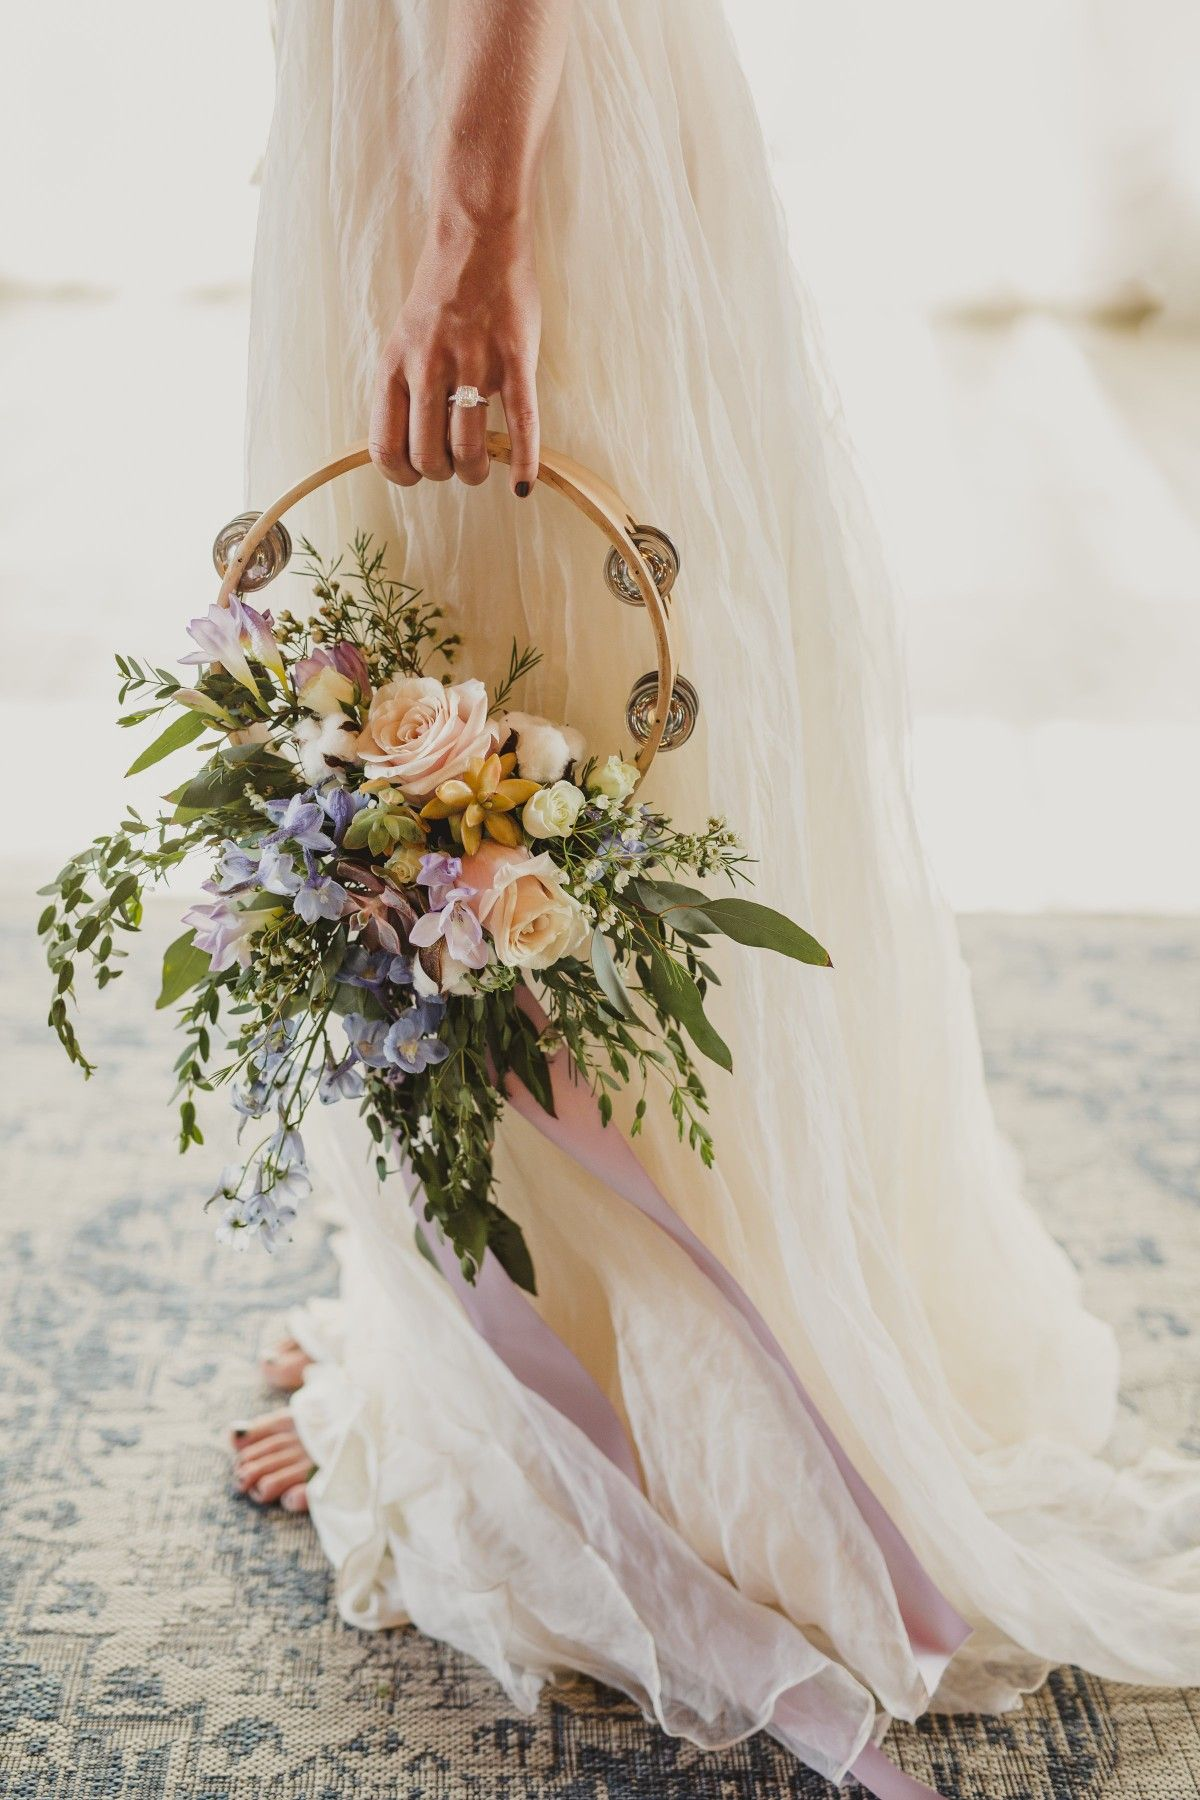 Unique Tambourine Bridal Bouquet With Succulents Nestled